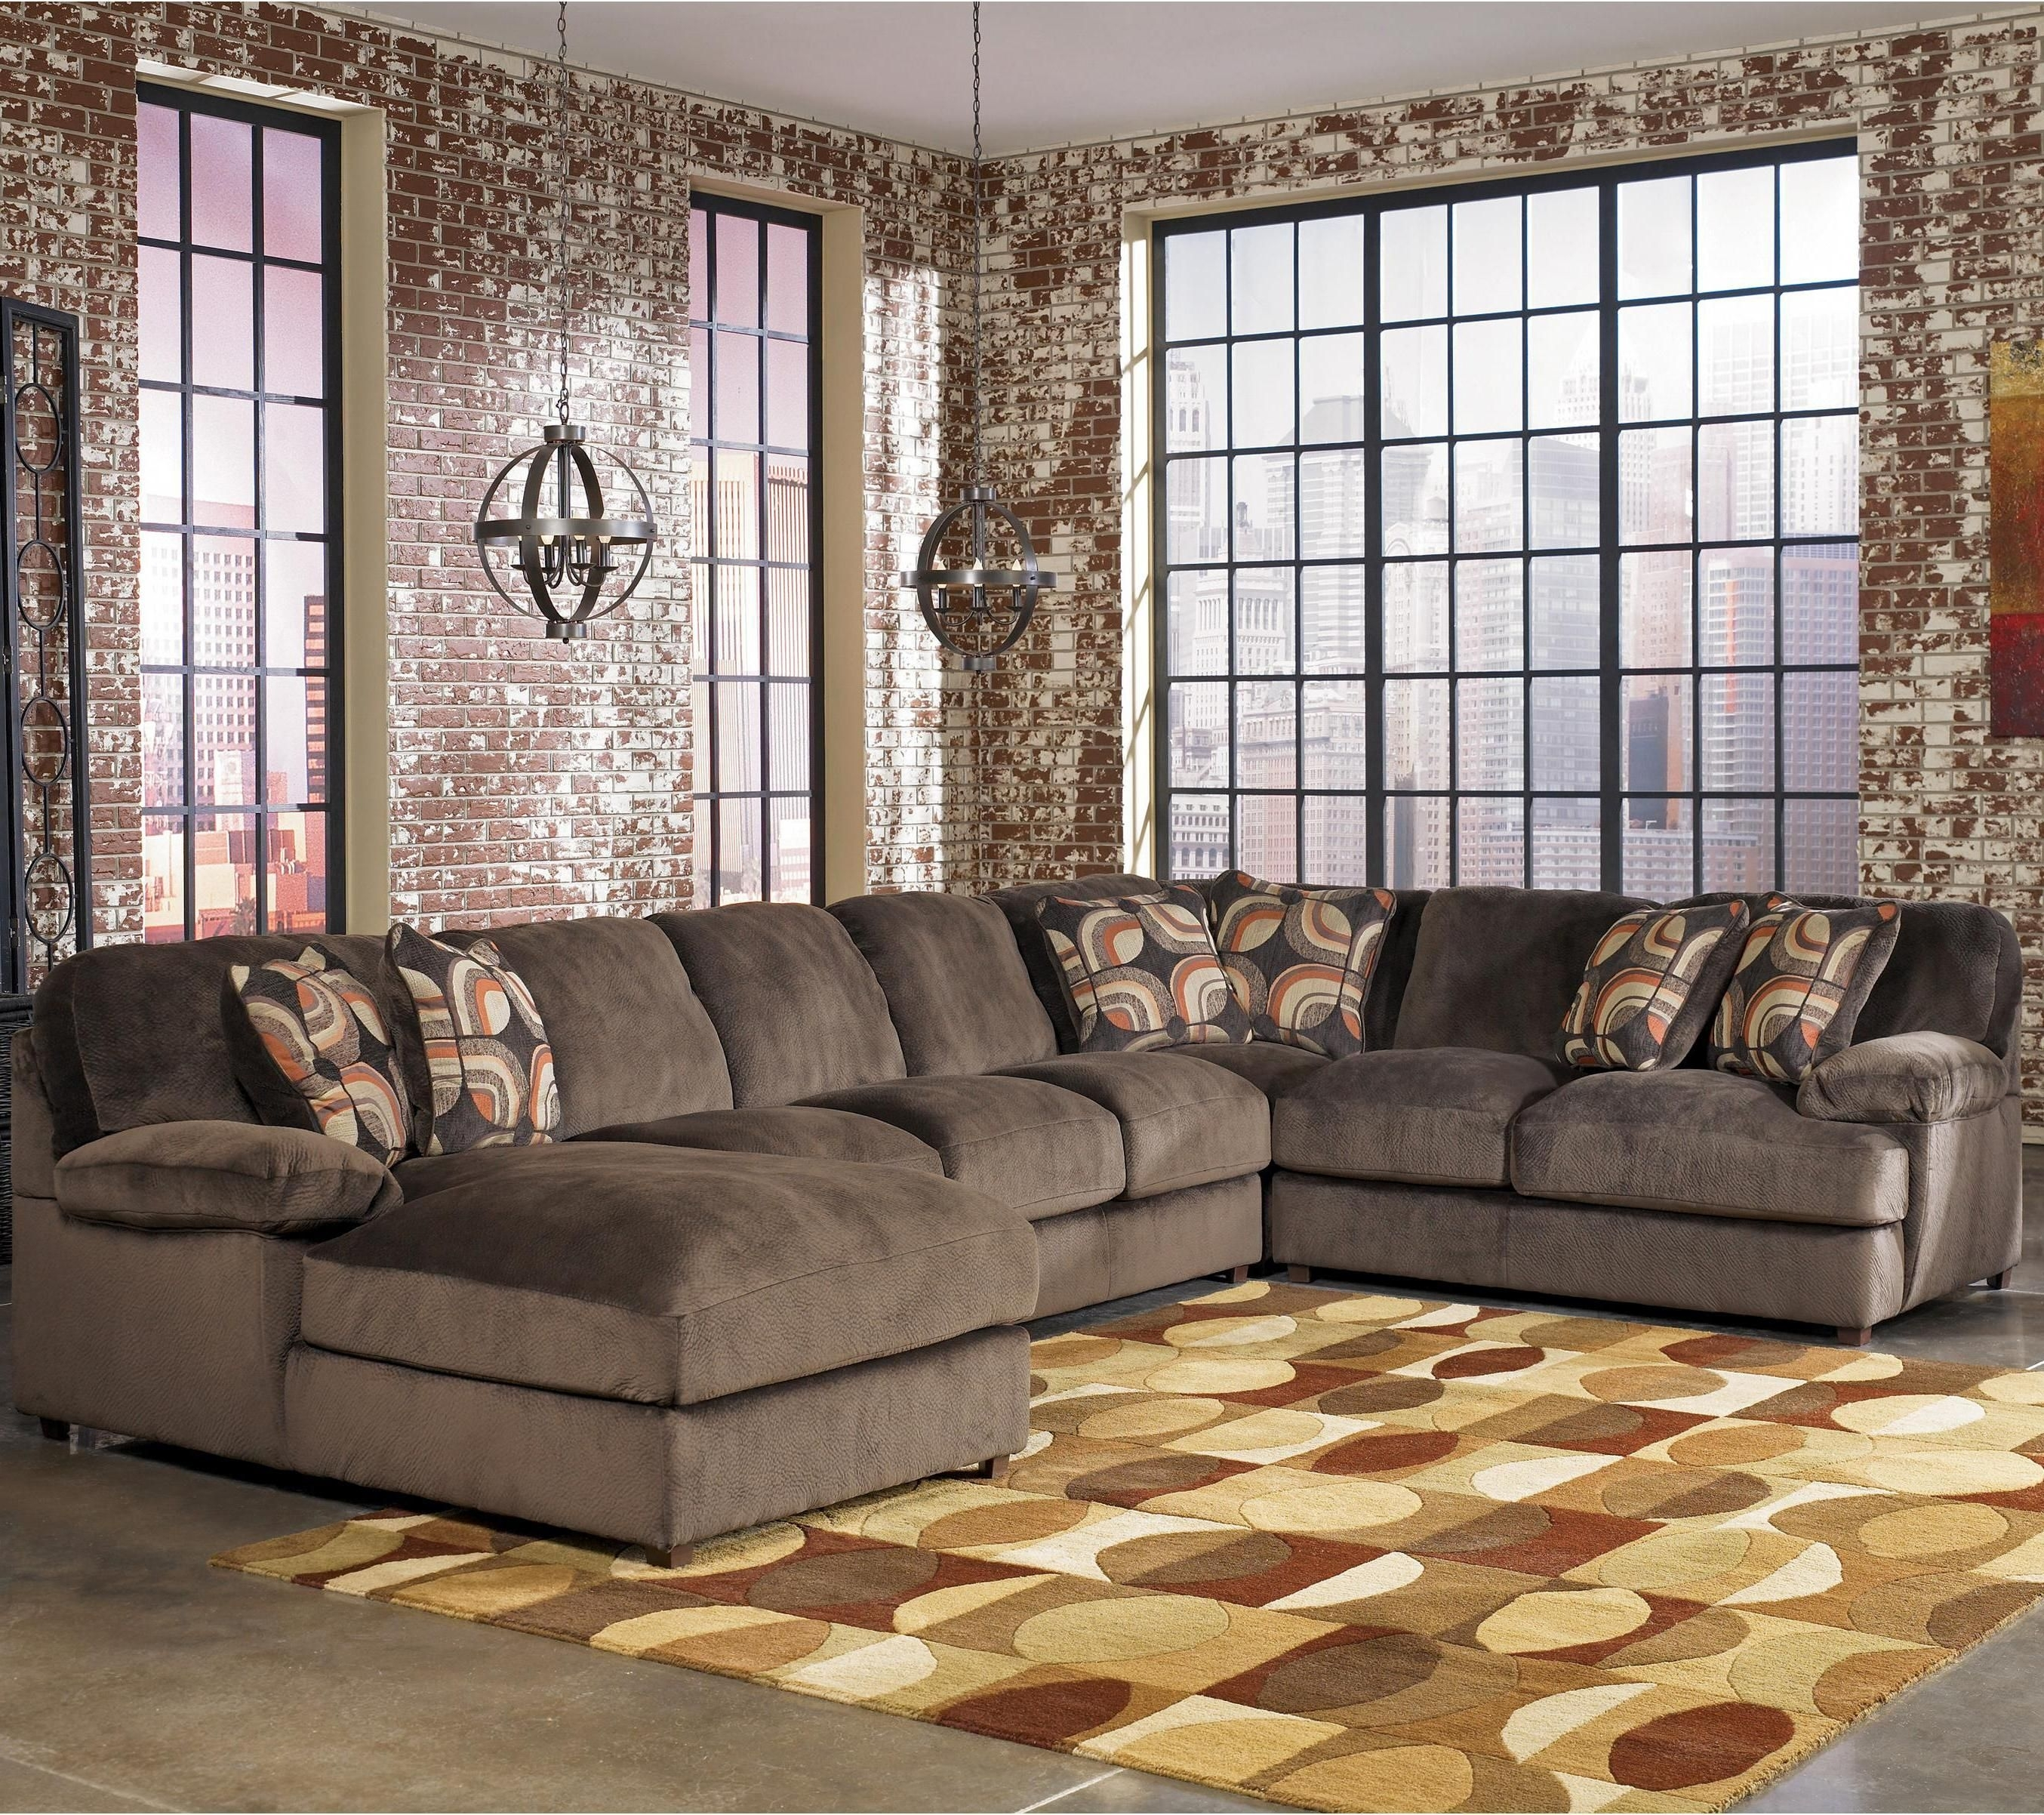 Levitz Furniture Truscotti Sectional – $1927 | Flood Moultrie In Sam Levitz Sectional Sofas (View 6 of 10)